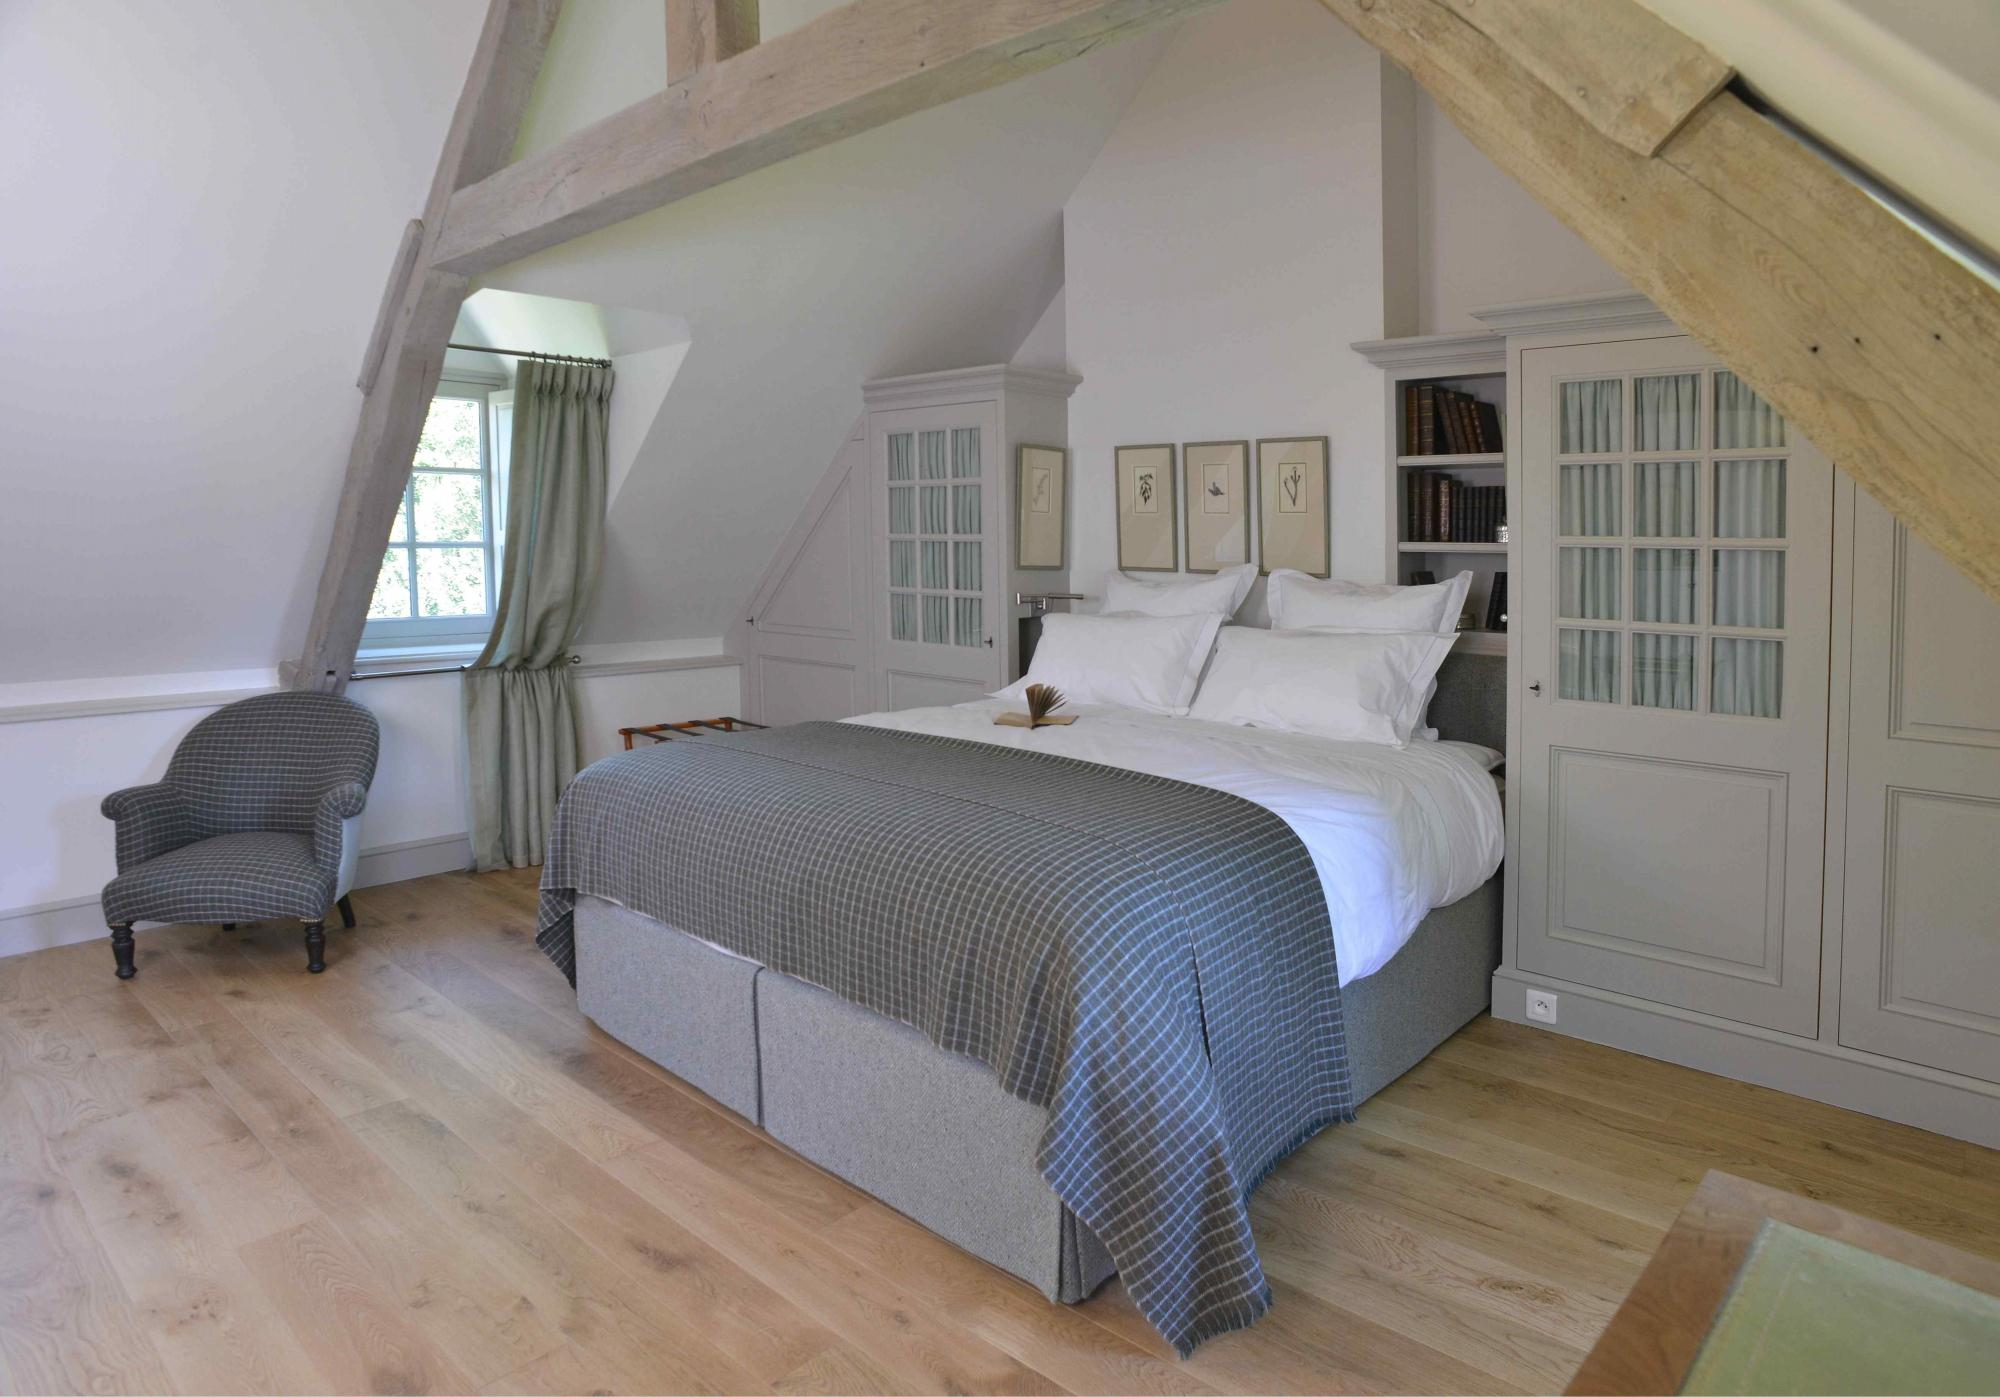 chambres d 39 hotes le clos de grace honfleur france reviews tripadvisor